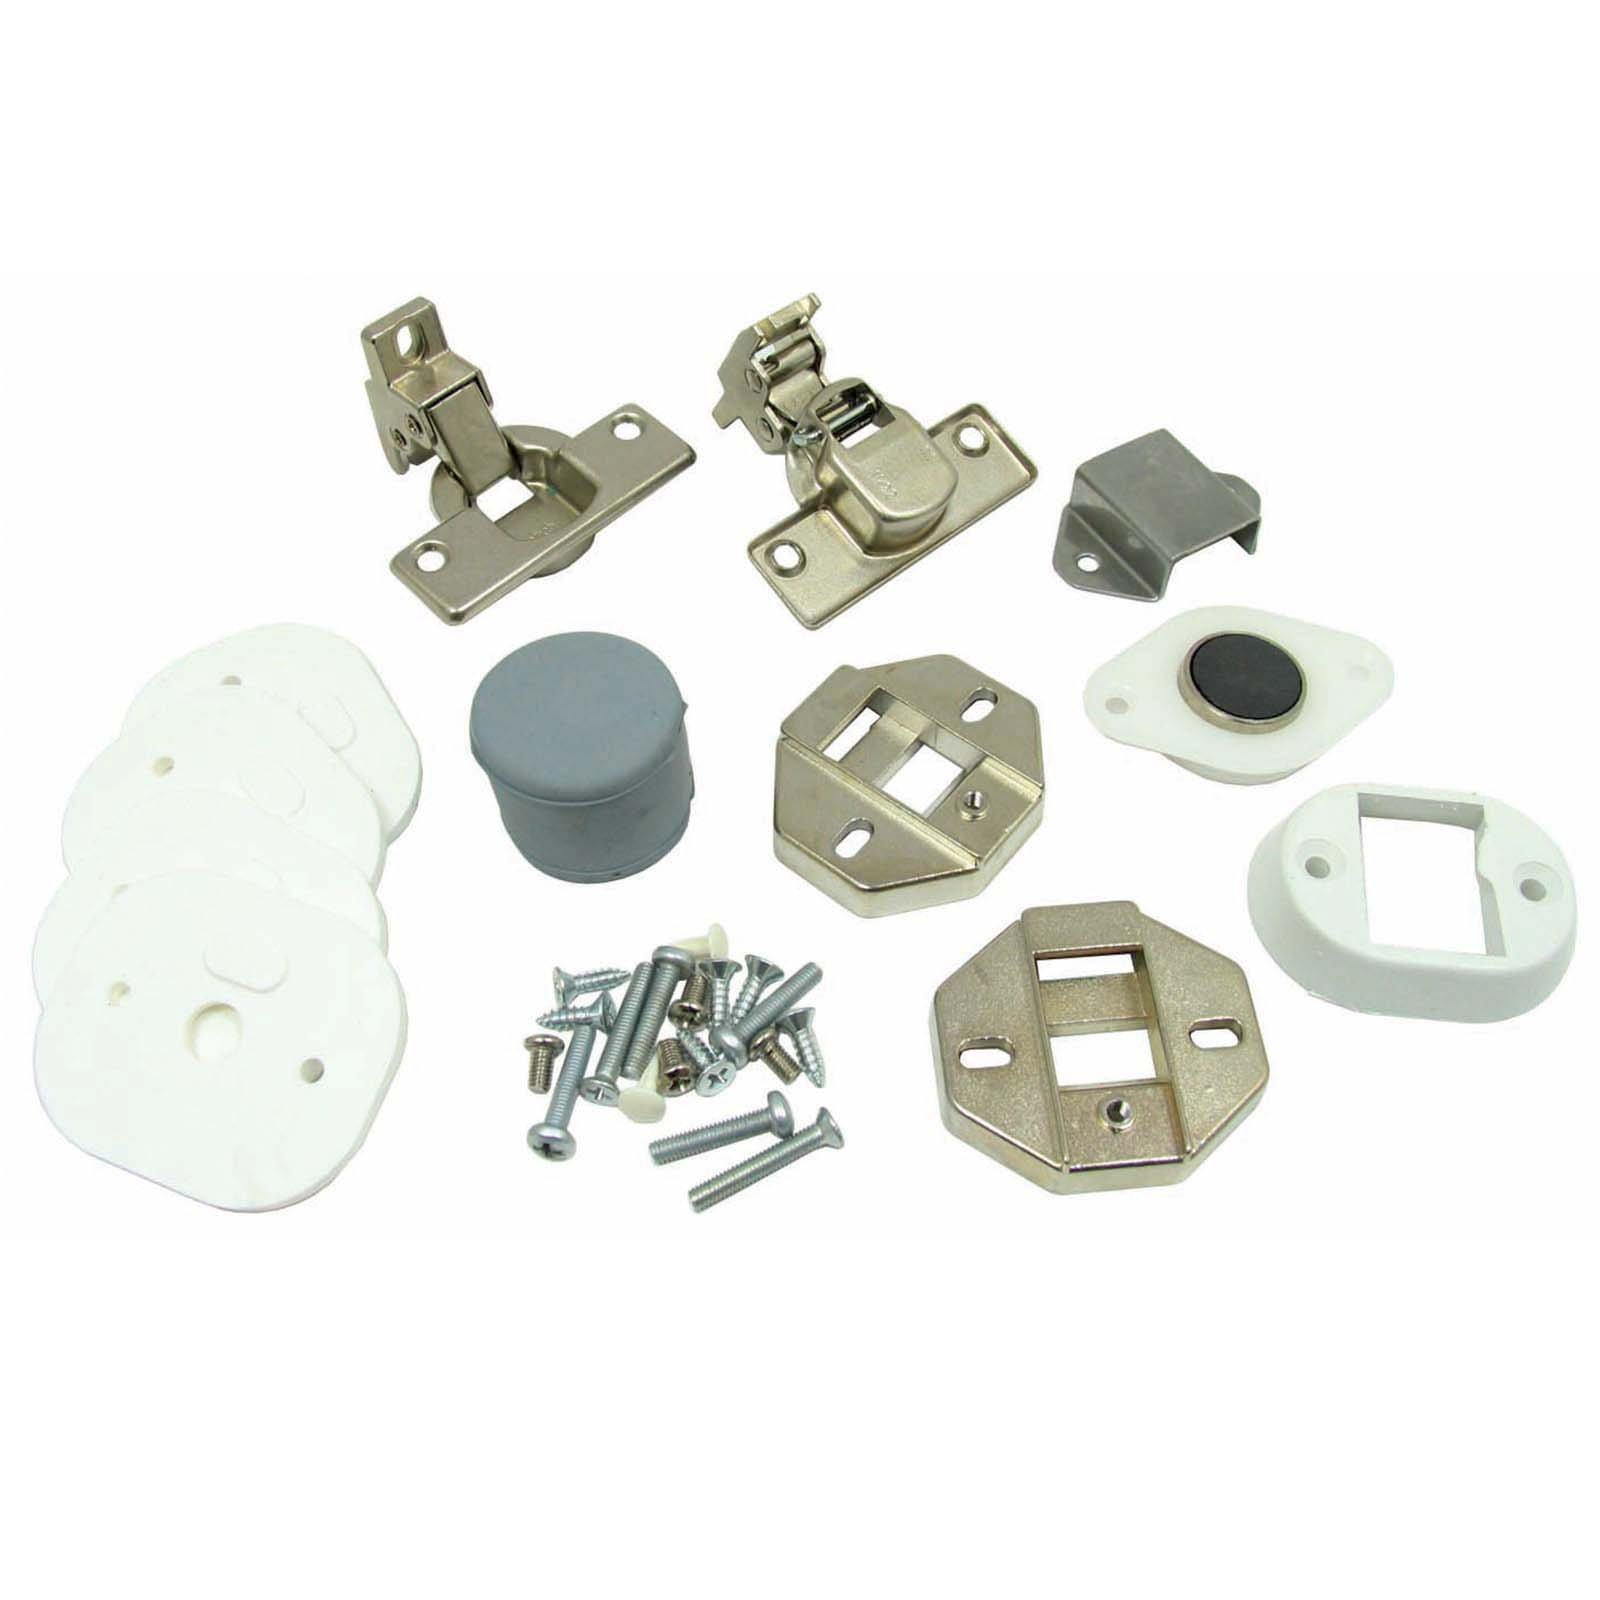 Hotpoint BHWD149UK/1 BHWM129UKA Washing Machine Cupboard Hotpoint Door Decor Hinge Installation Kit